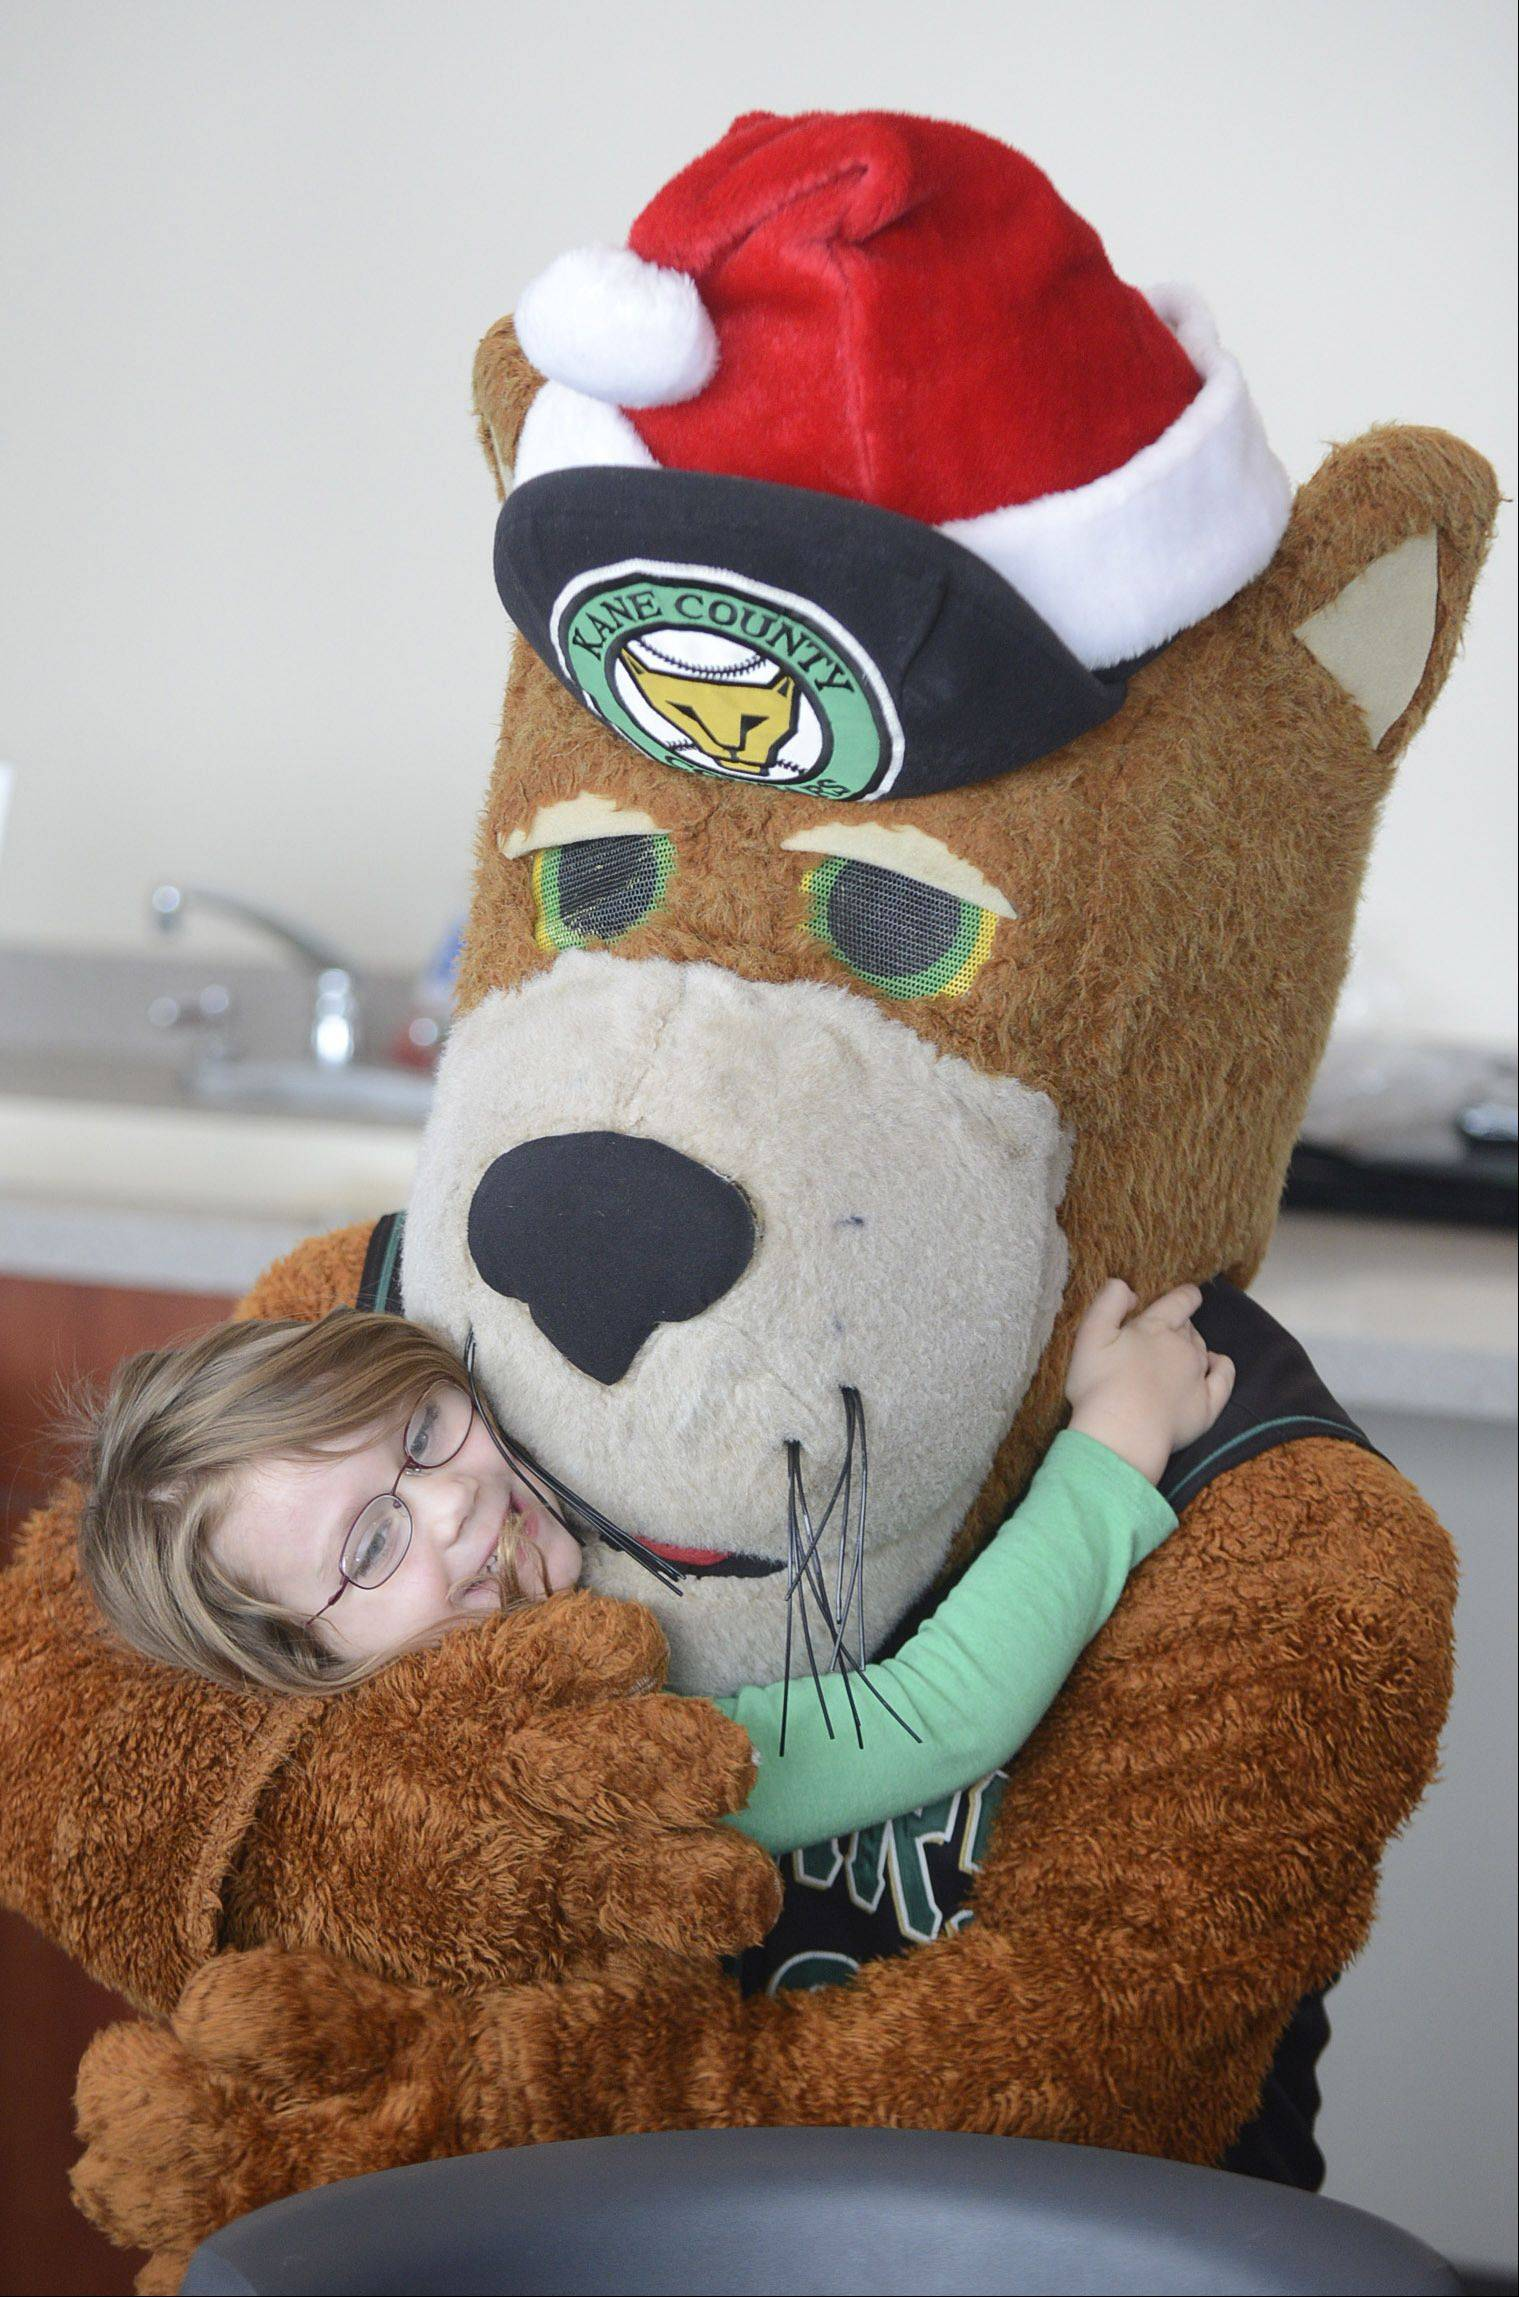 Abigail Bowgren, 5, of Geneva throws her arms around Ozzie the Cougar after decorating holiday cookies at the Kane County Cougars� second annual holiday event at Fifth Third Ballpark in Geneva Saturday.